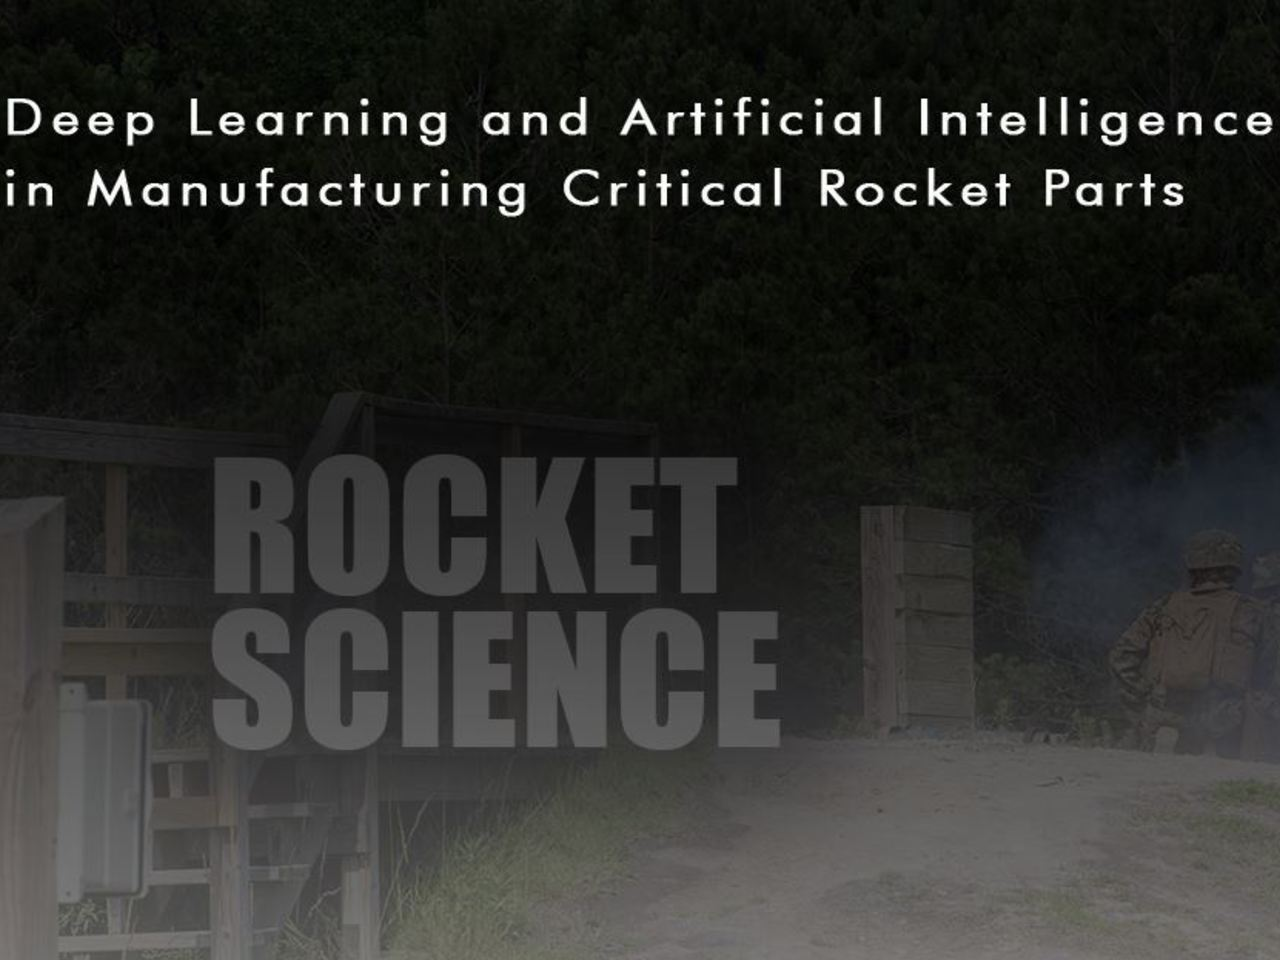 Deep Learning and Artificial Intelligence in Manufacturing Critical Rocket Parts